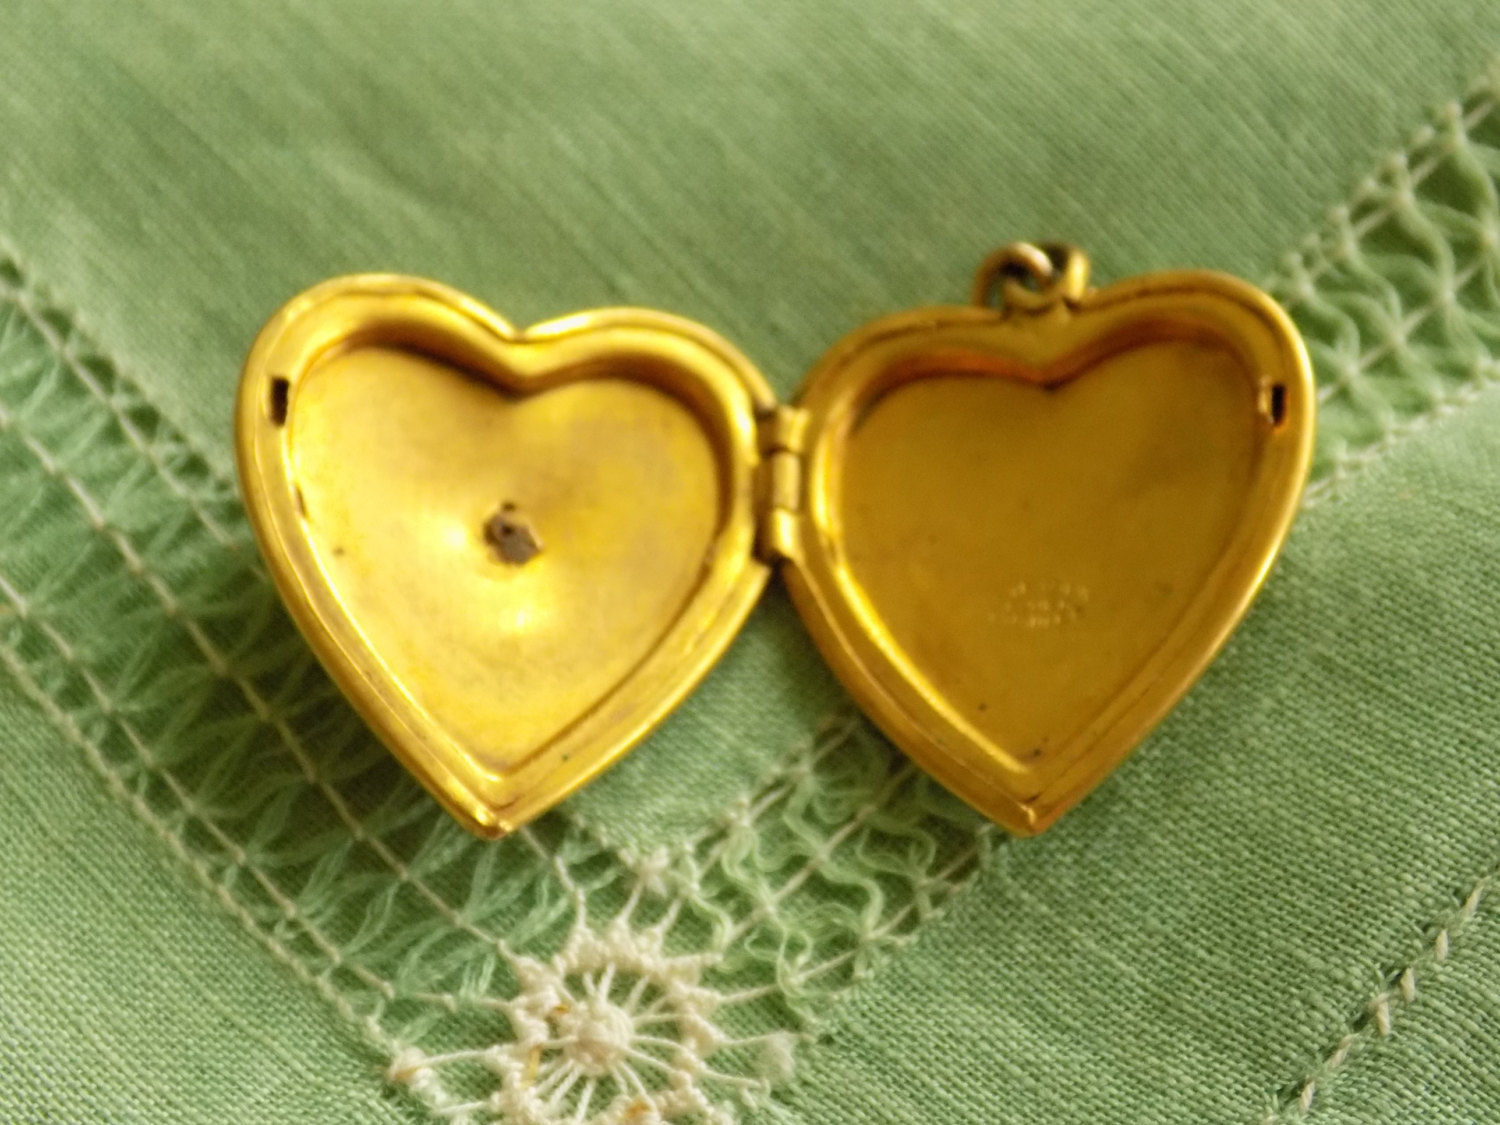 Vintage Gold Filled Heart Locket Pendant Great Seal of the United States of Amer image 2